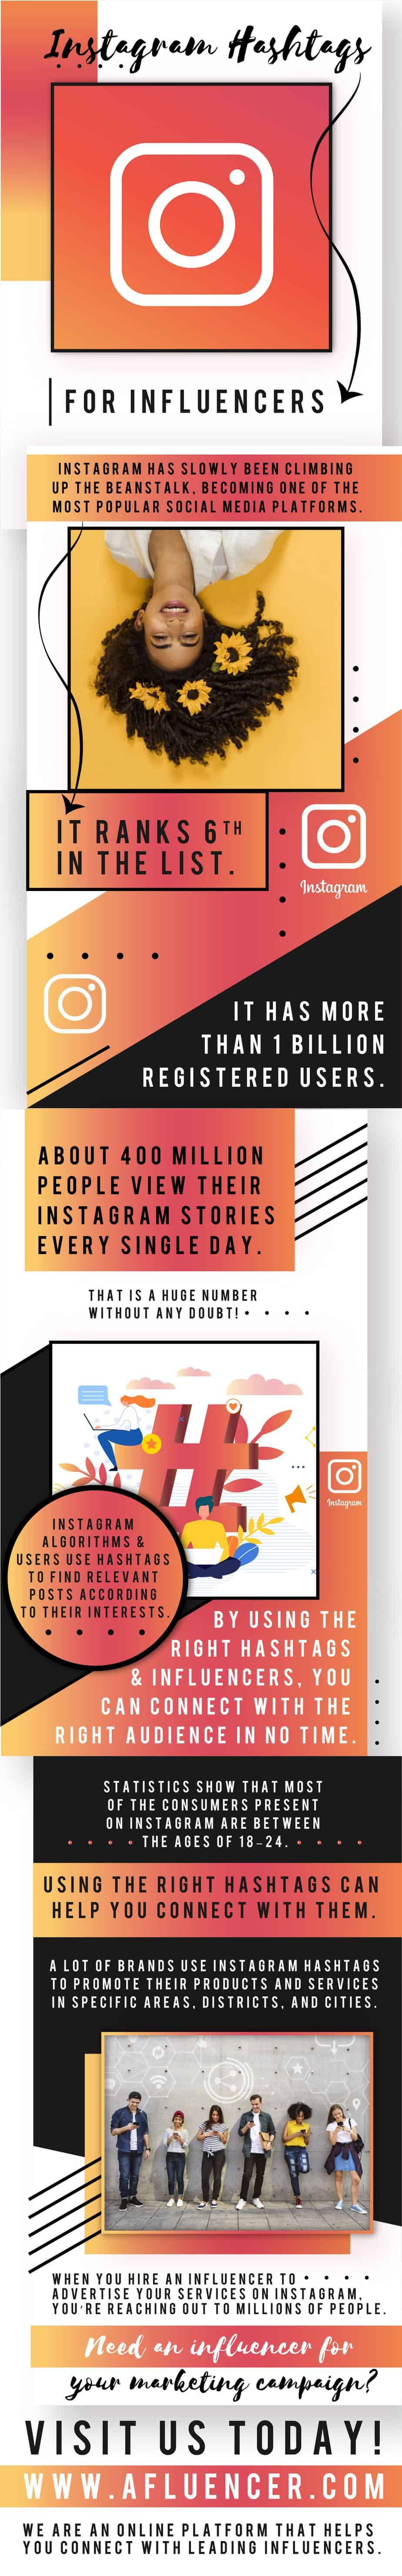 Infographic: Instagram Hashtags for Influencers